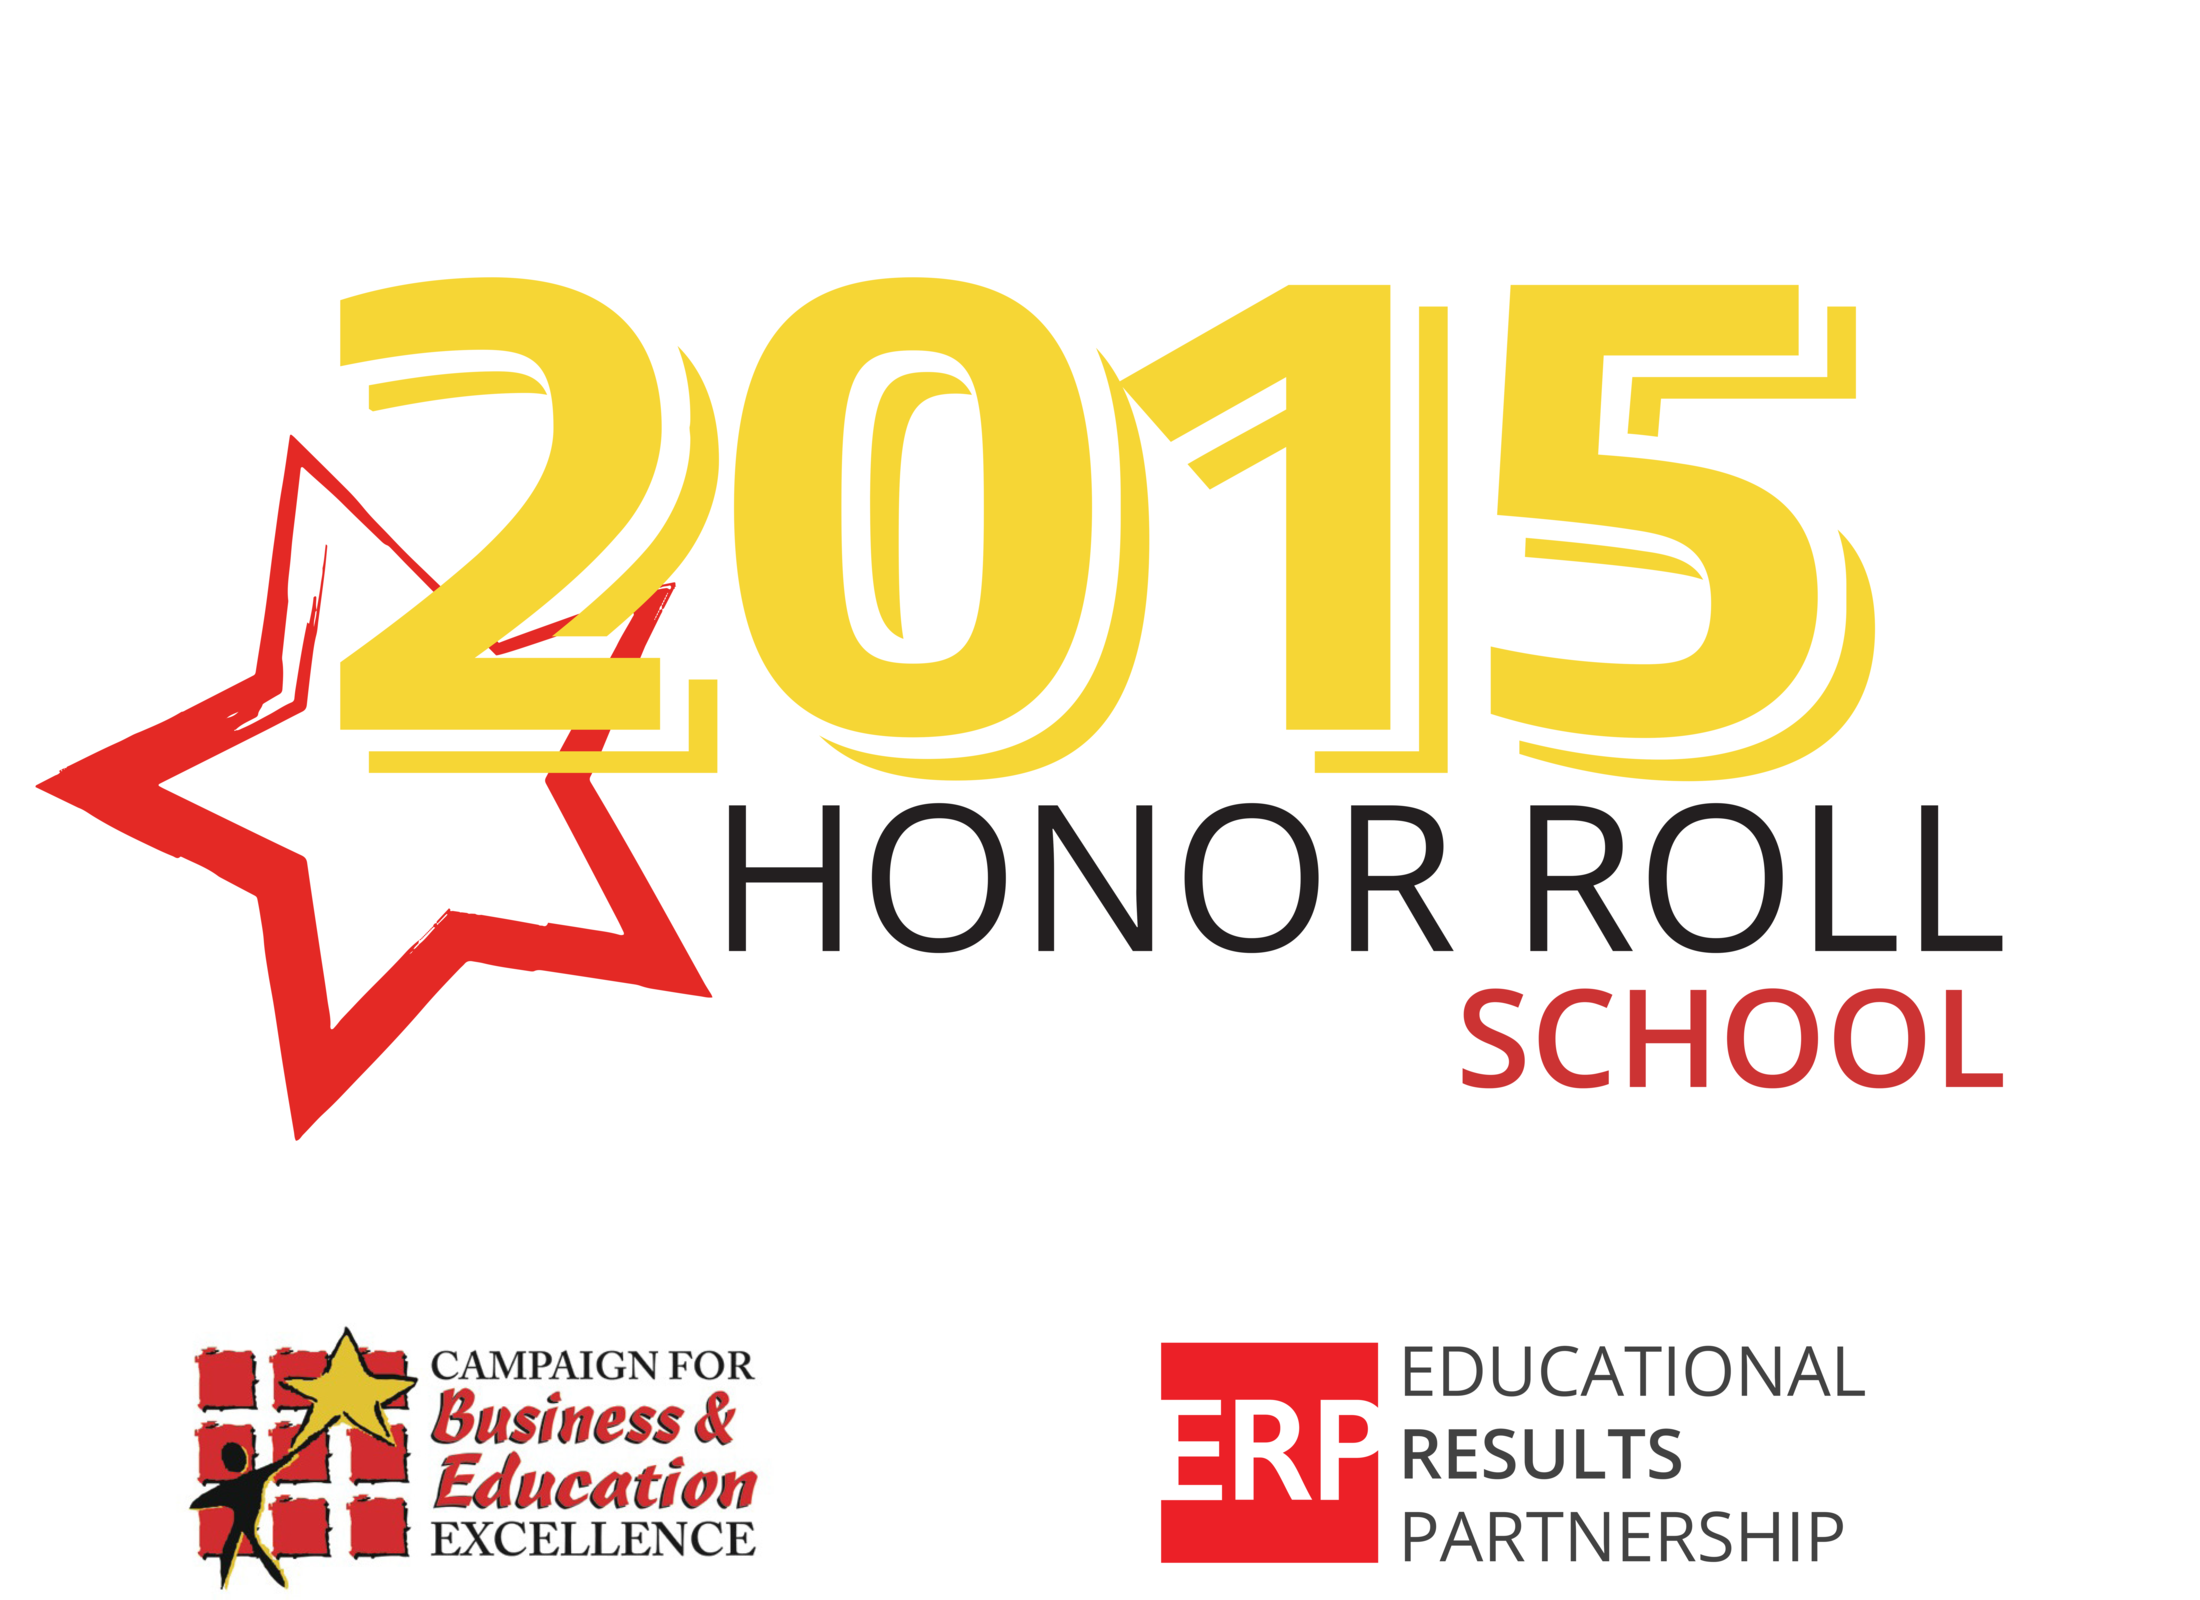 2015 Honor Roll School for Business and Education Excellence